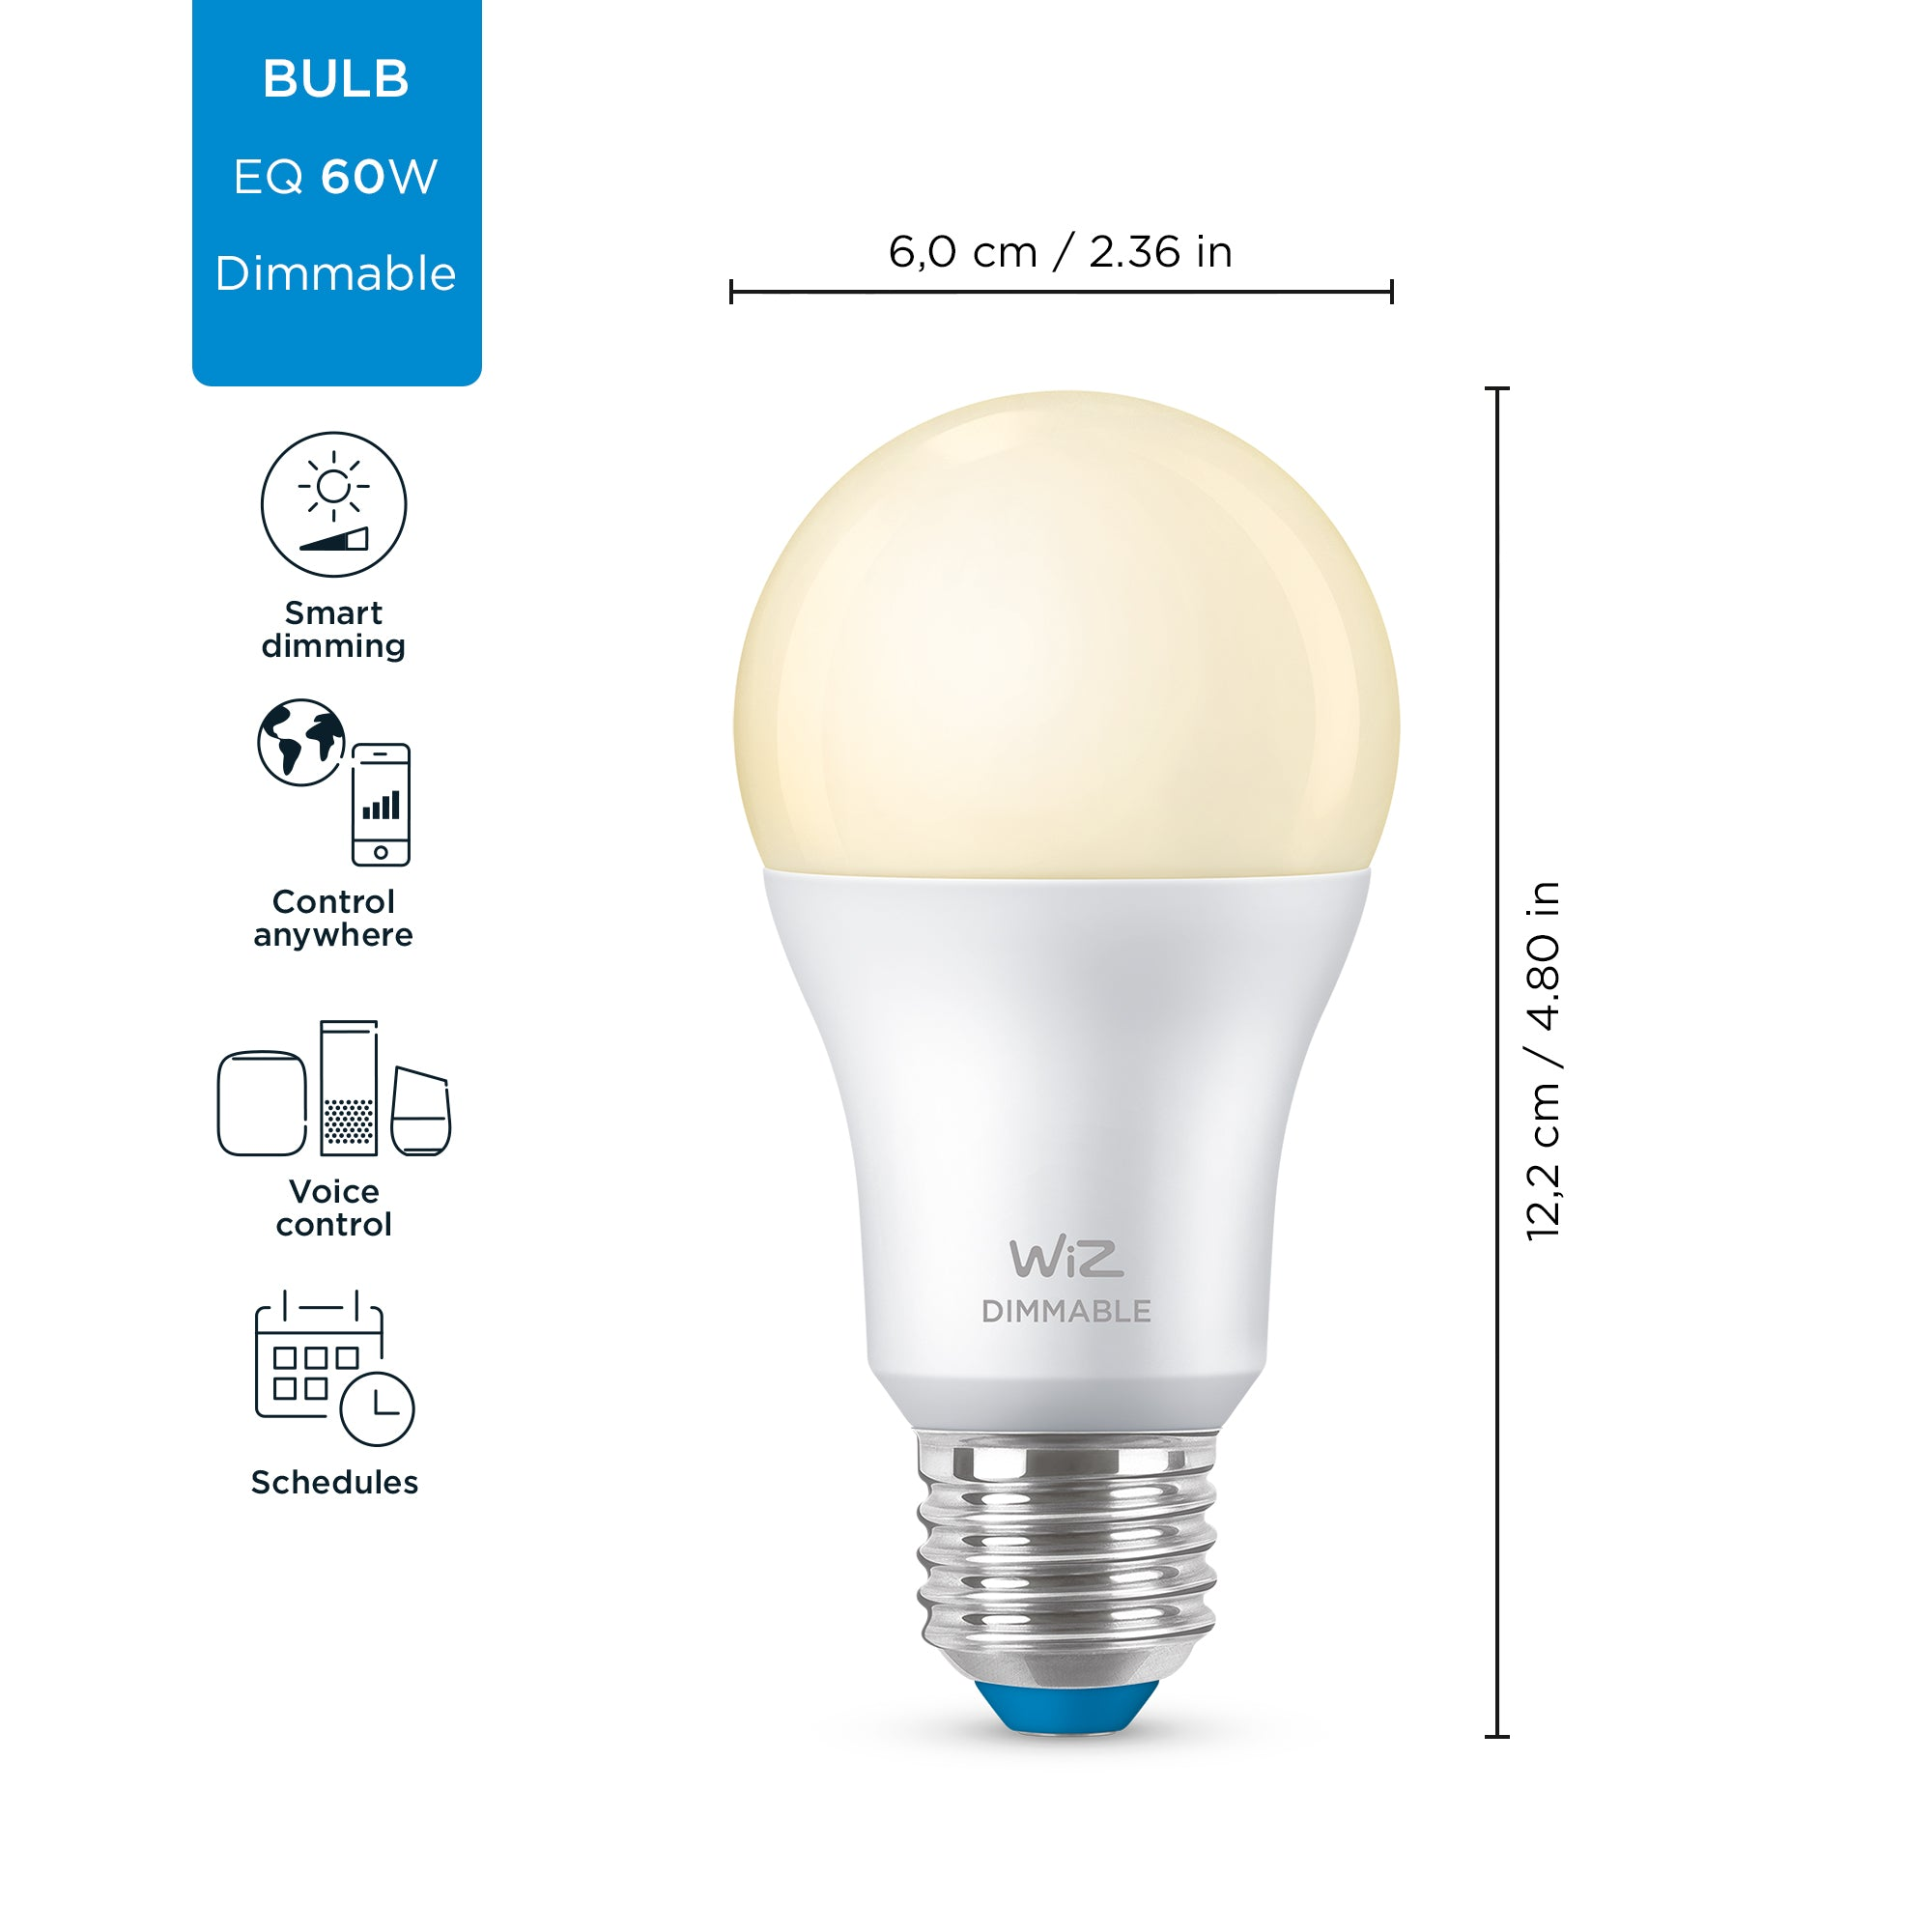 WiZ Dimmable White Wi-Fi A60 E27